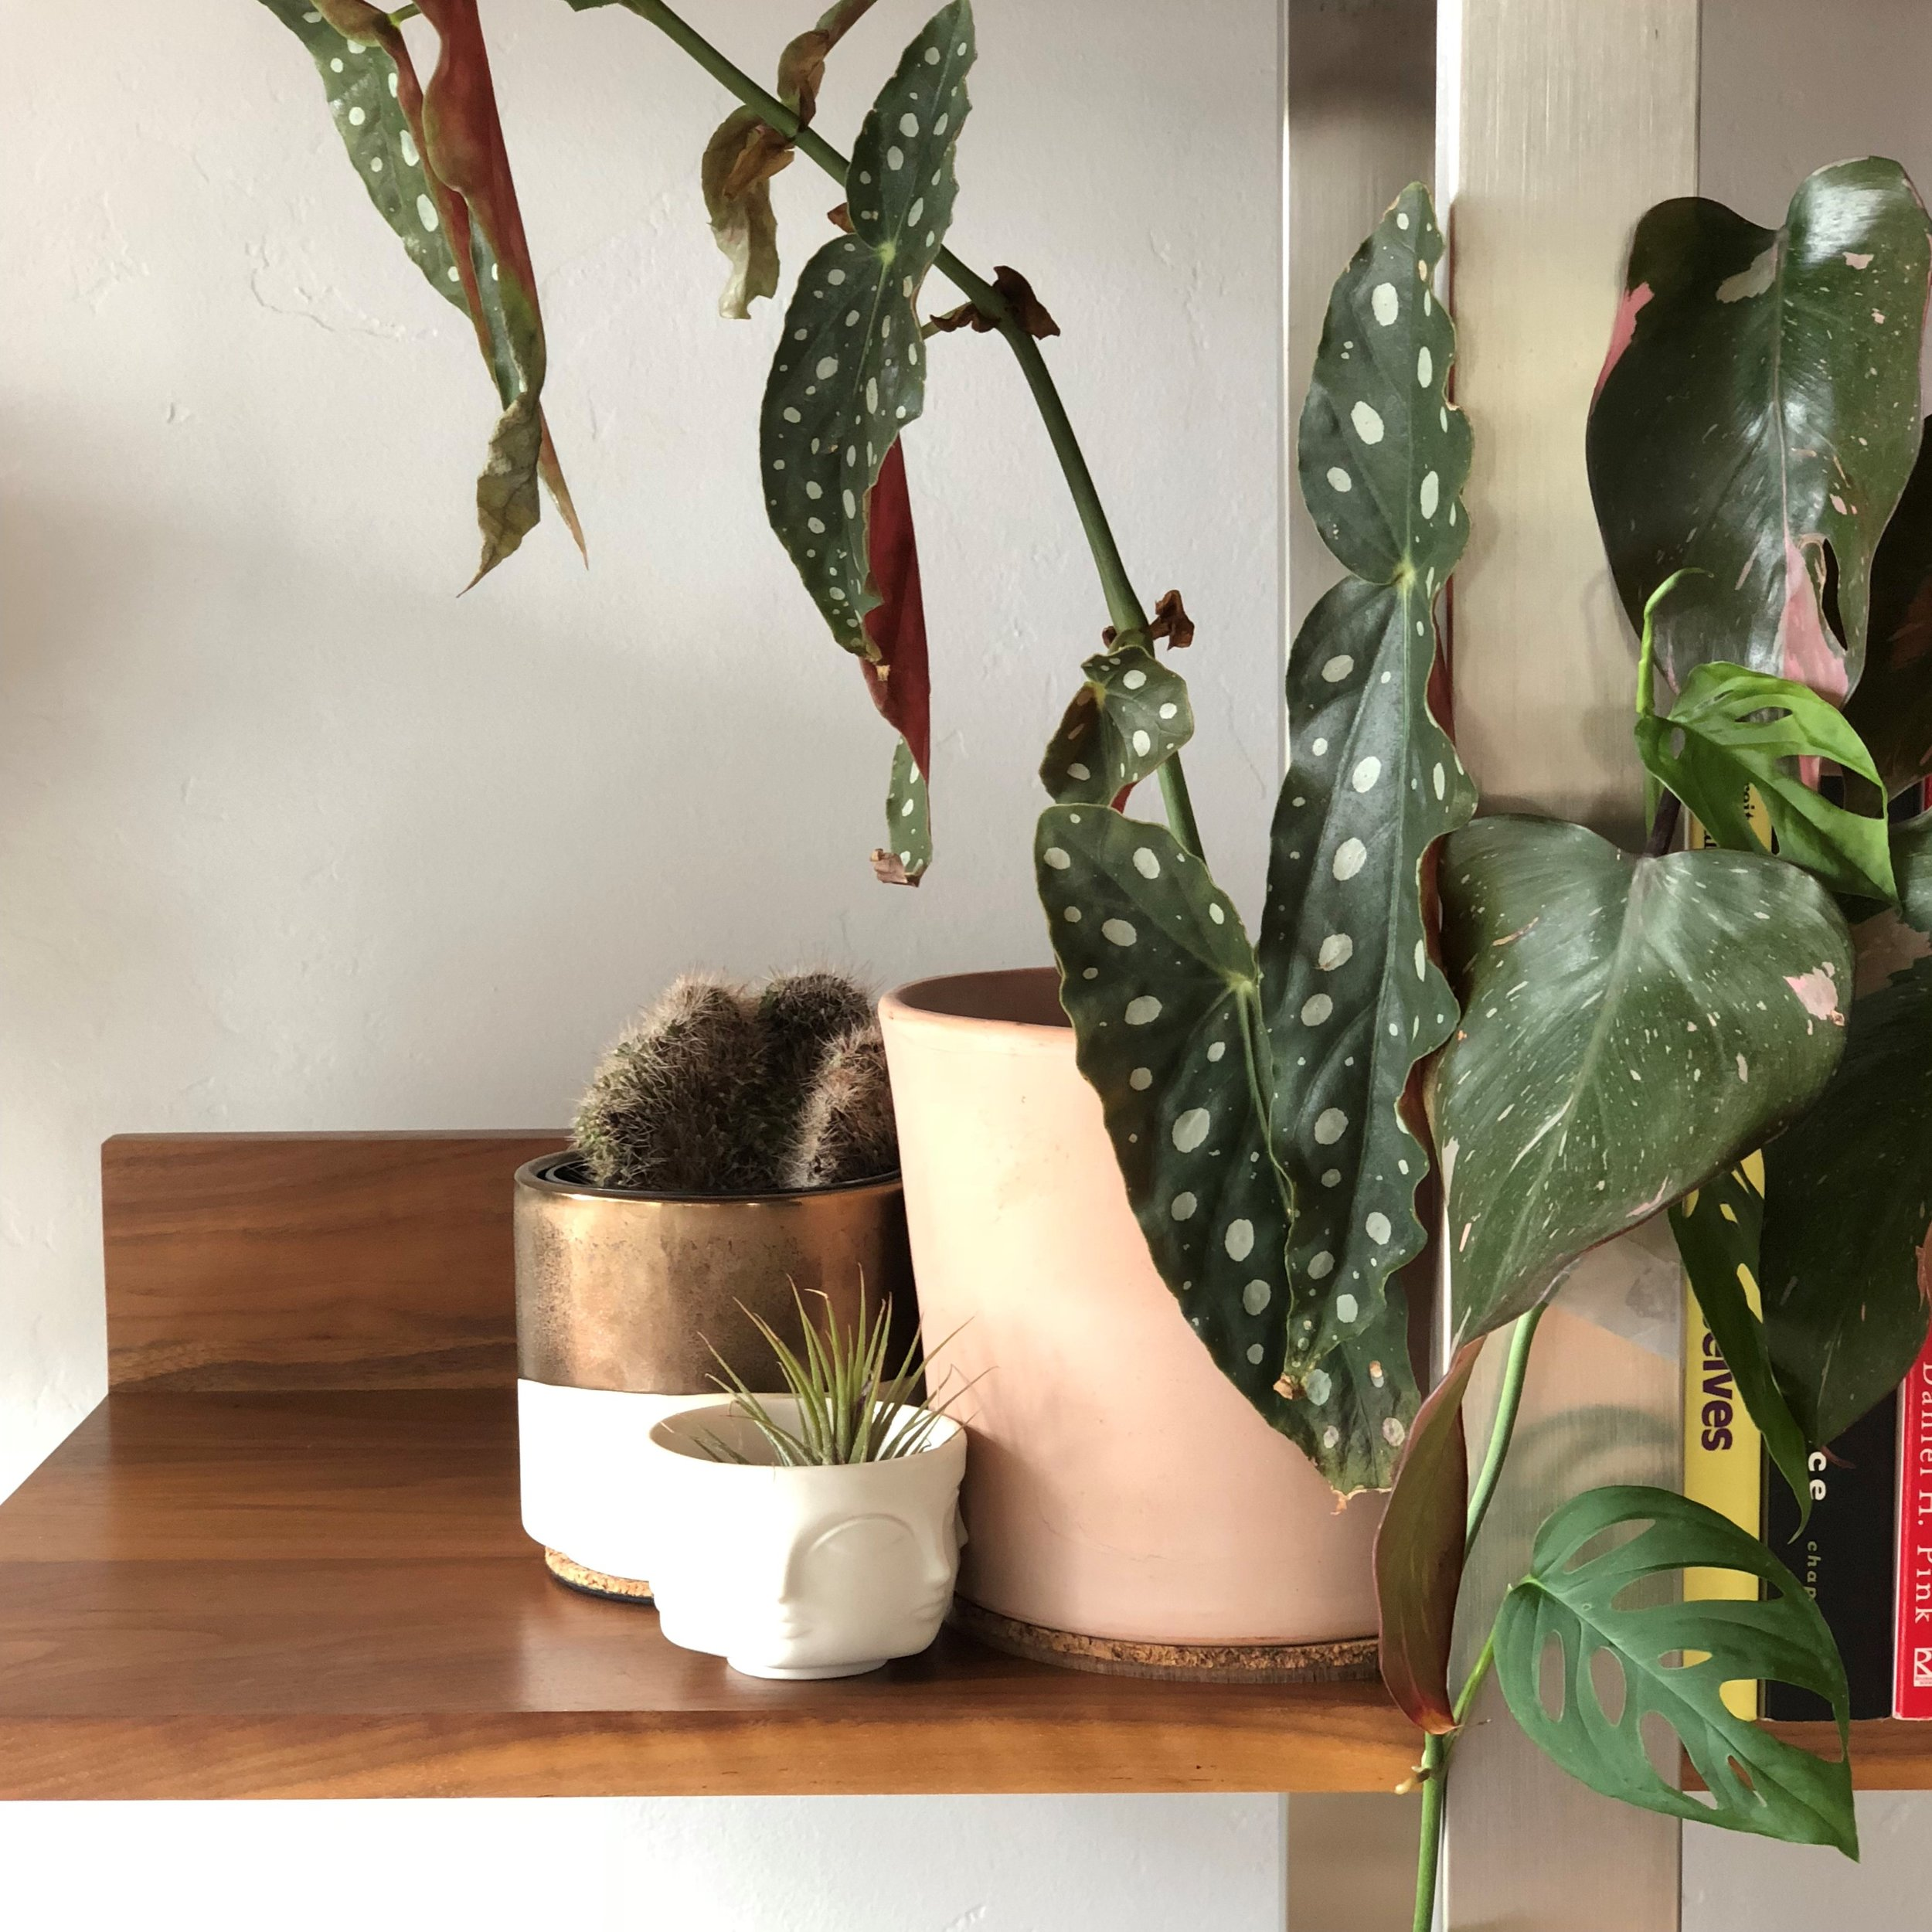 One of my favorite variations on standard terra cotta is this clean lined shape. I especially love the lighter, rosy color. The pot with the cactus is from Pigment (shoppigment.com). The little face airplant holder is actually a votive holder designed by Jonathan Adler (jonathanadler.com).